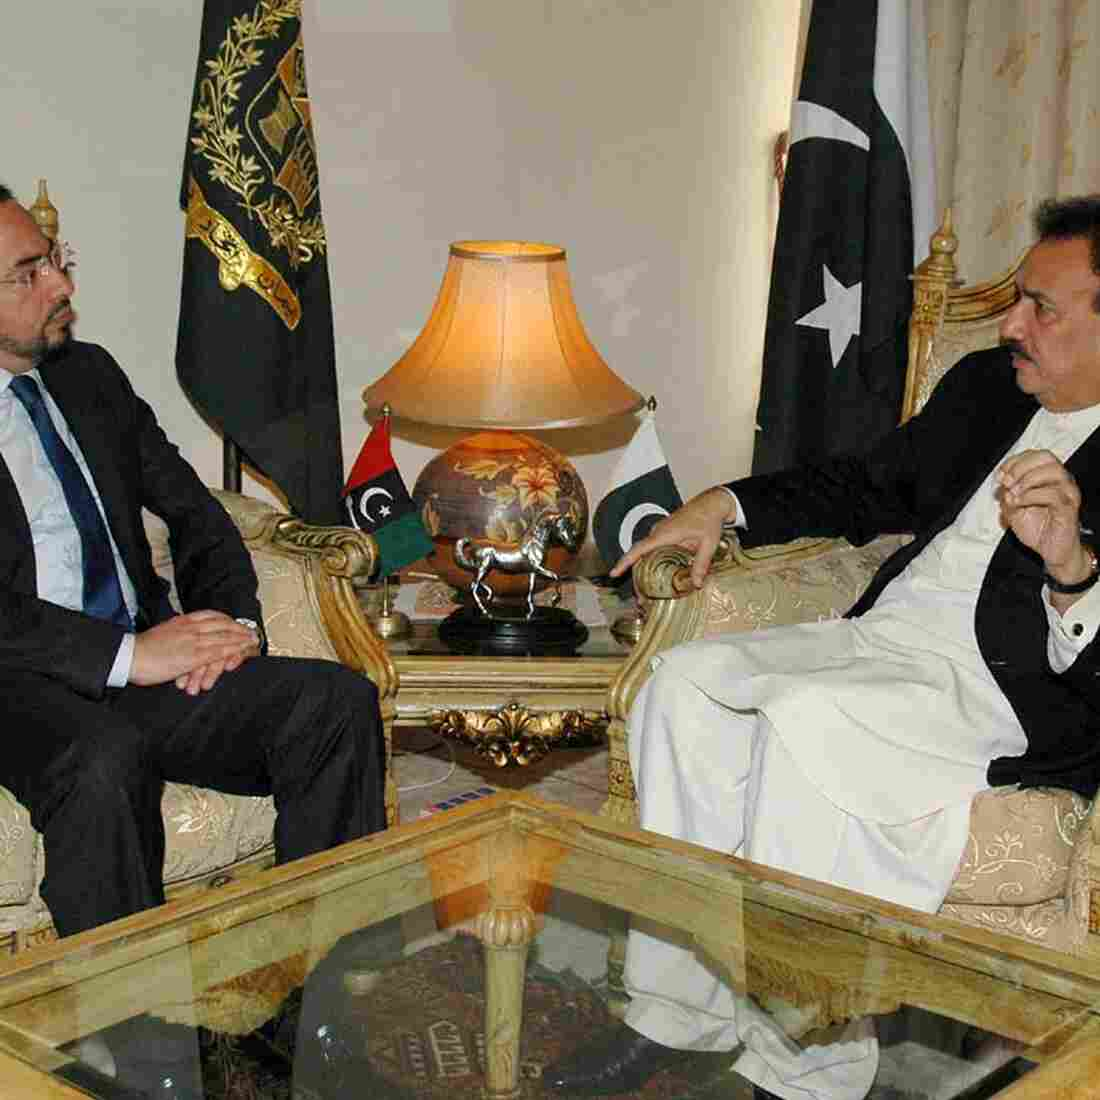 Pakistan's Interior Minister Rehman Malik (right) meets with Salahuddin Rabbani, head of the Afghan High Peace Council, in Islamabad last week. Pakistan freed at least nine Taliban prisoners at the request of the Afghan government, in a move meant to help jump-start a shaky peace process with the militant group in neighboring Afghanistan, officials said.